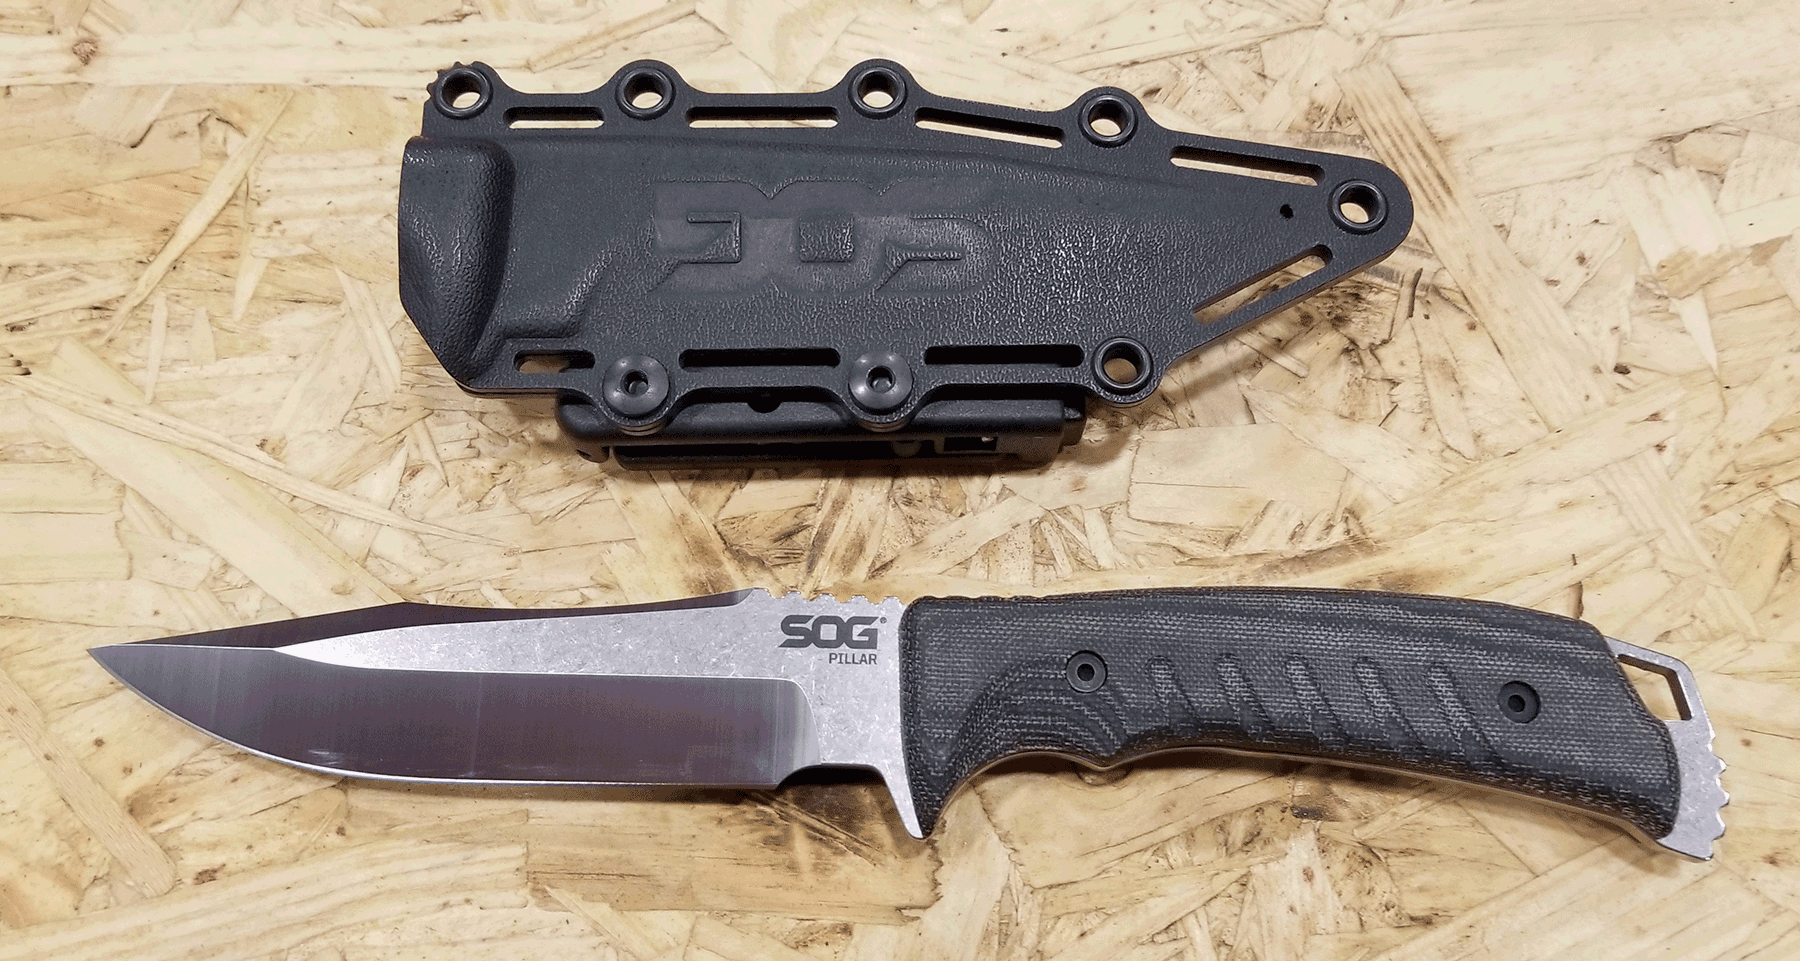 Review Of The SOG Pillar (Fixed Blade) Knife